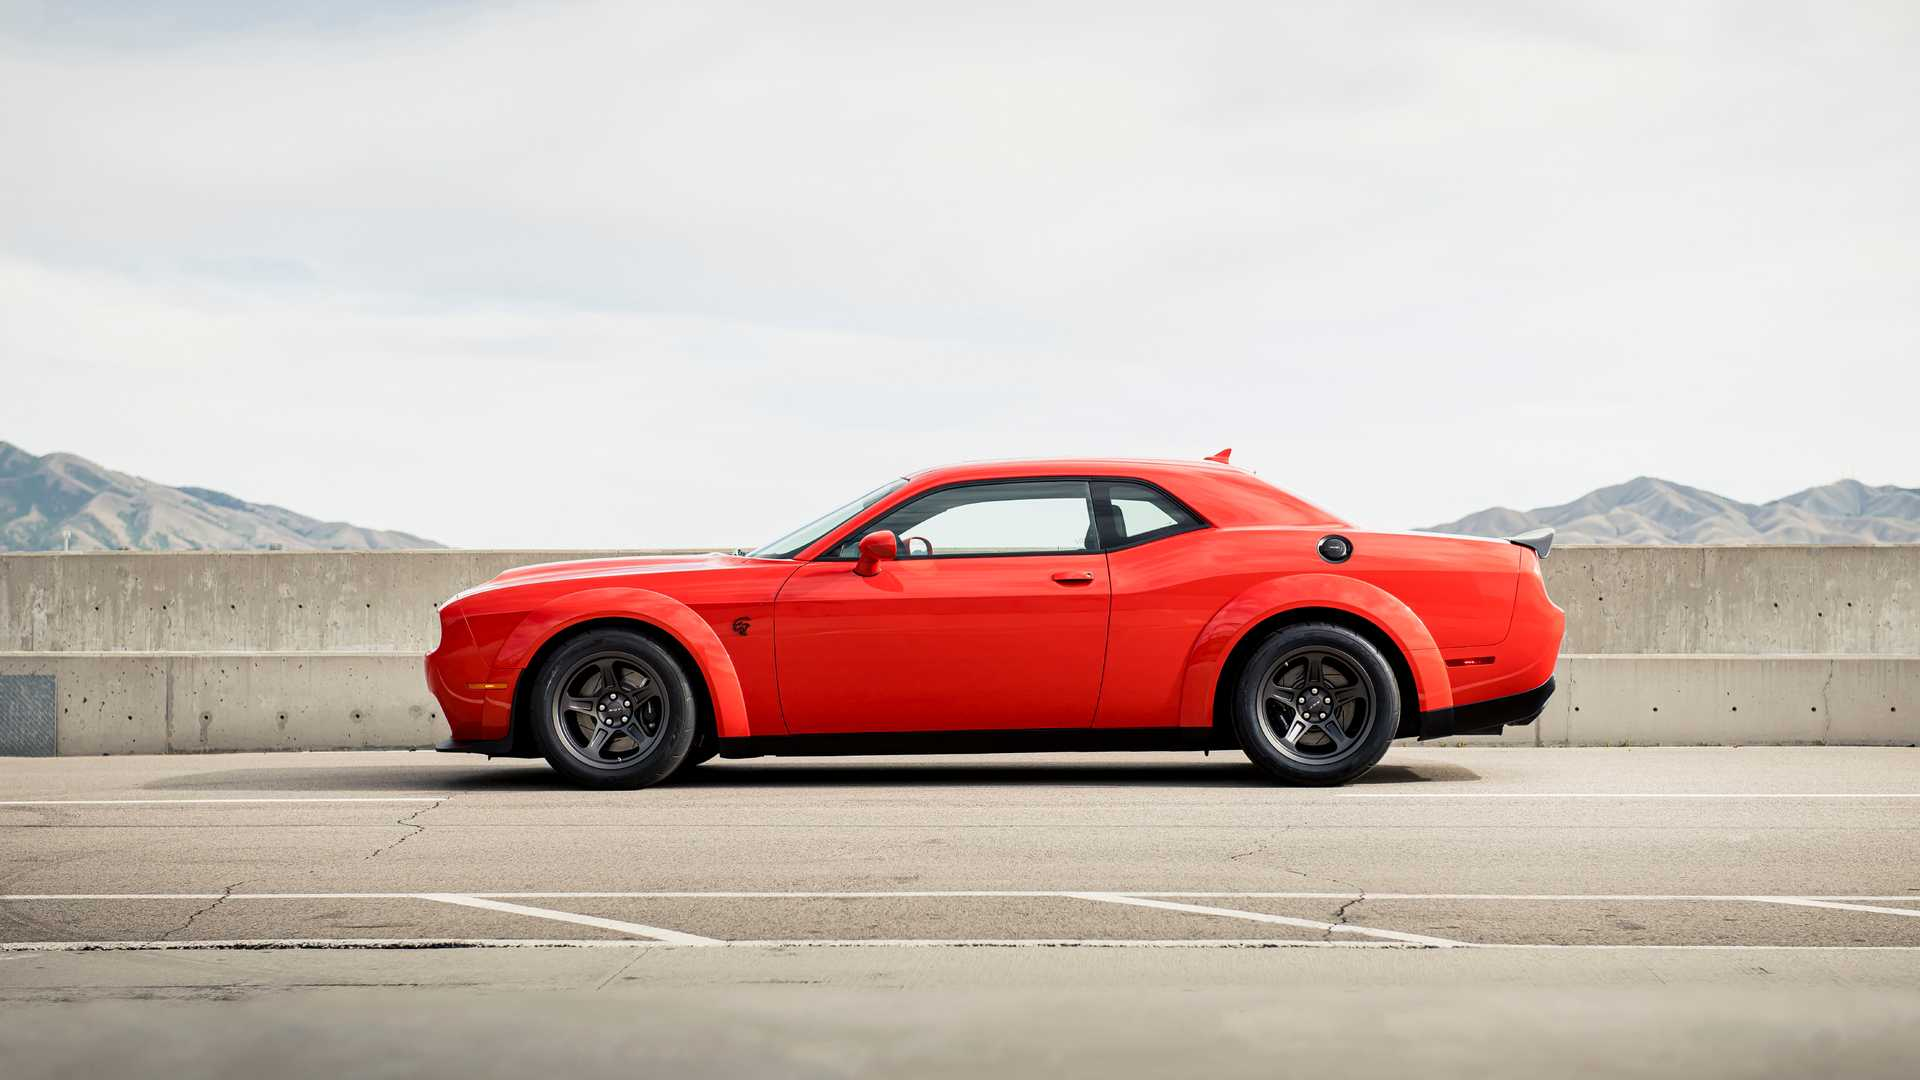 2021 Dodge Challenger Srt Super Stock Muscle Car Is Half Demon Half Redeye Autoevolution